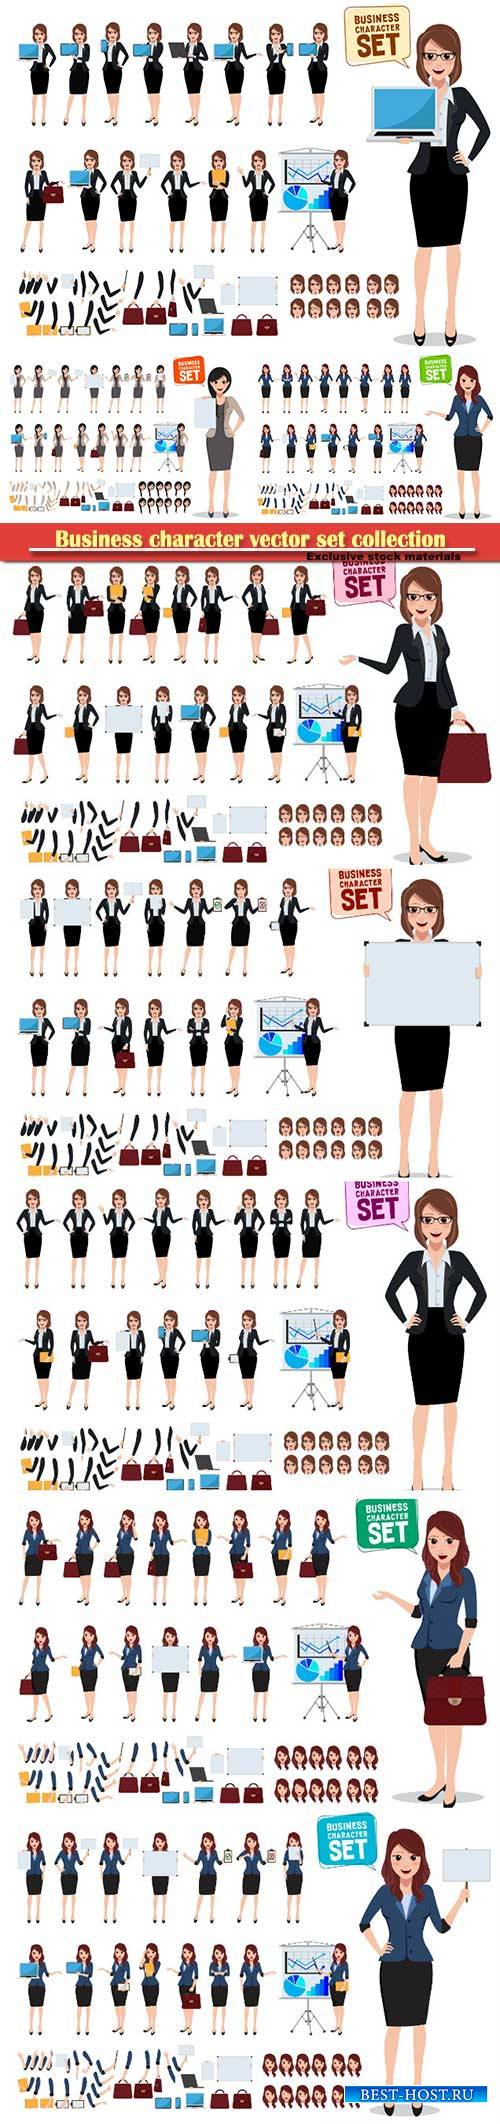 Business character vector set